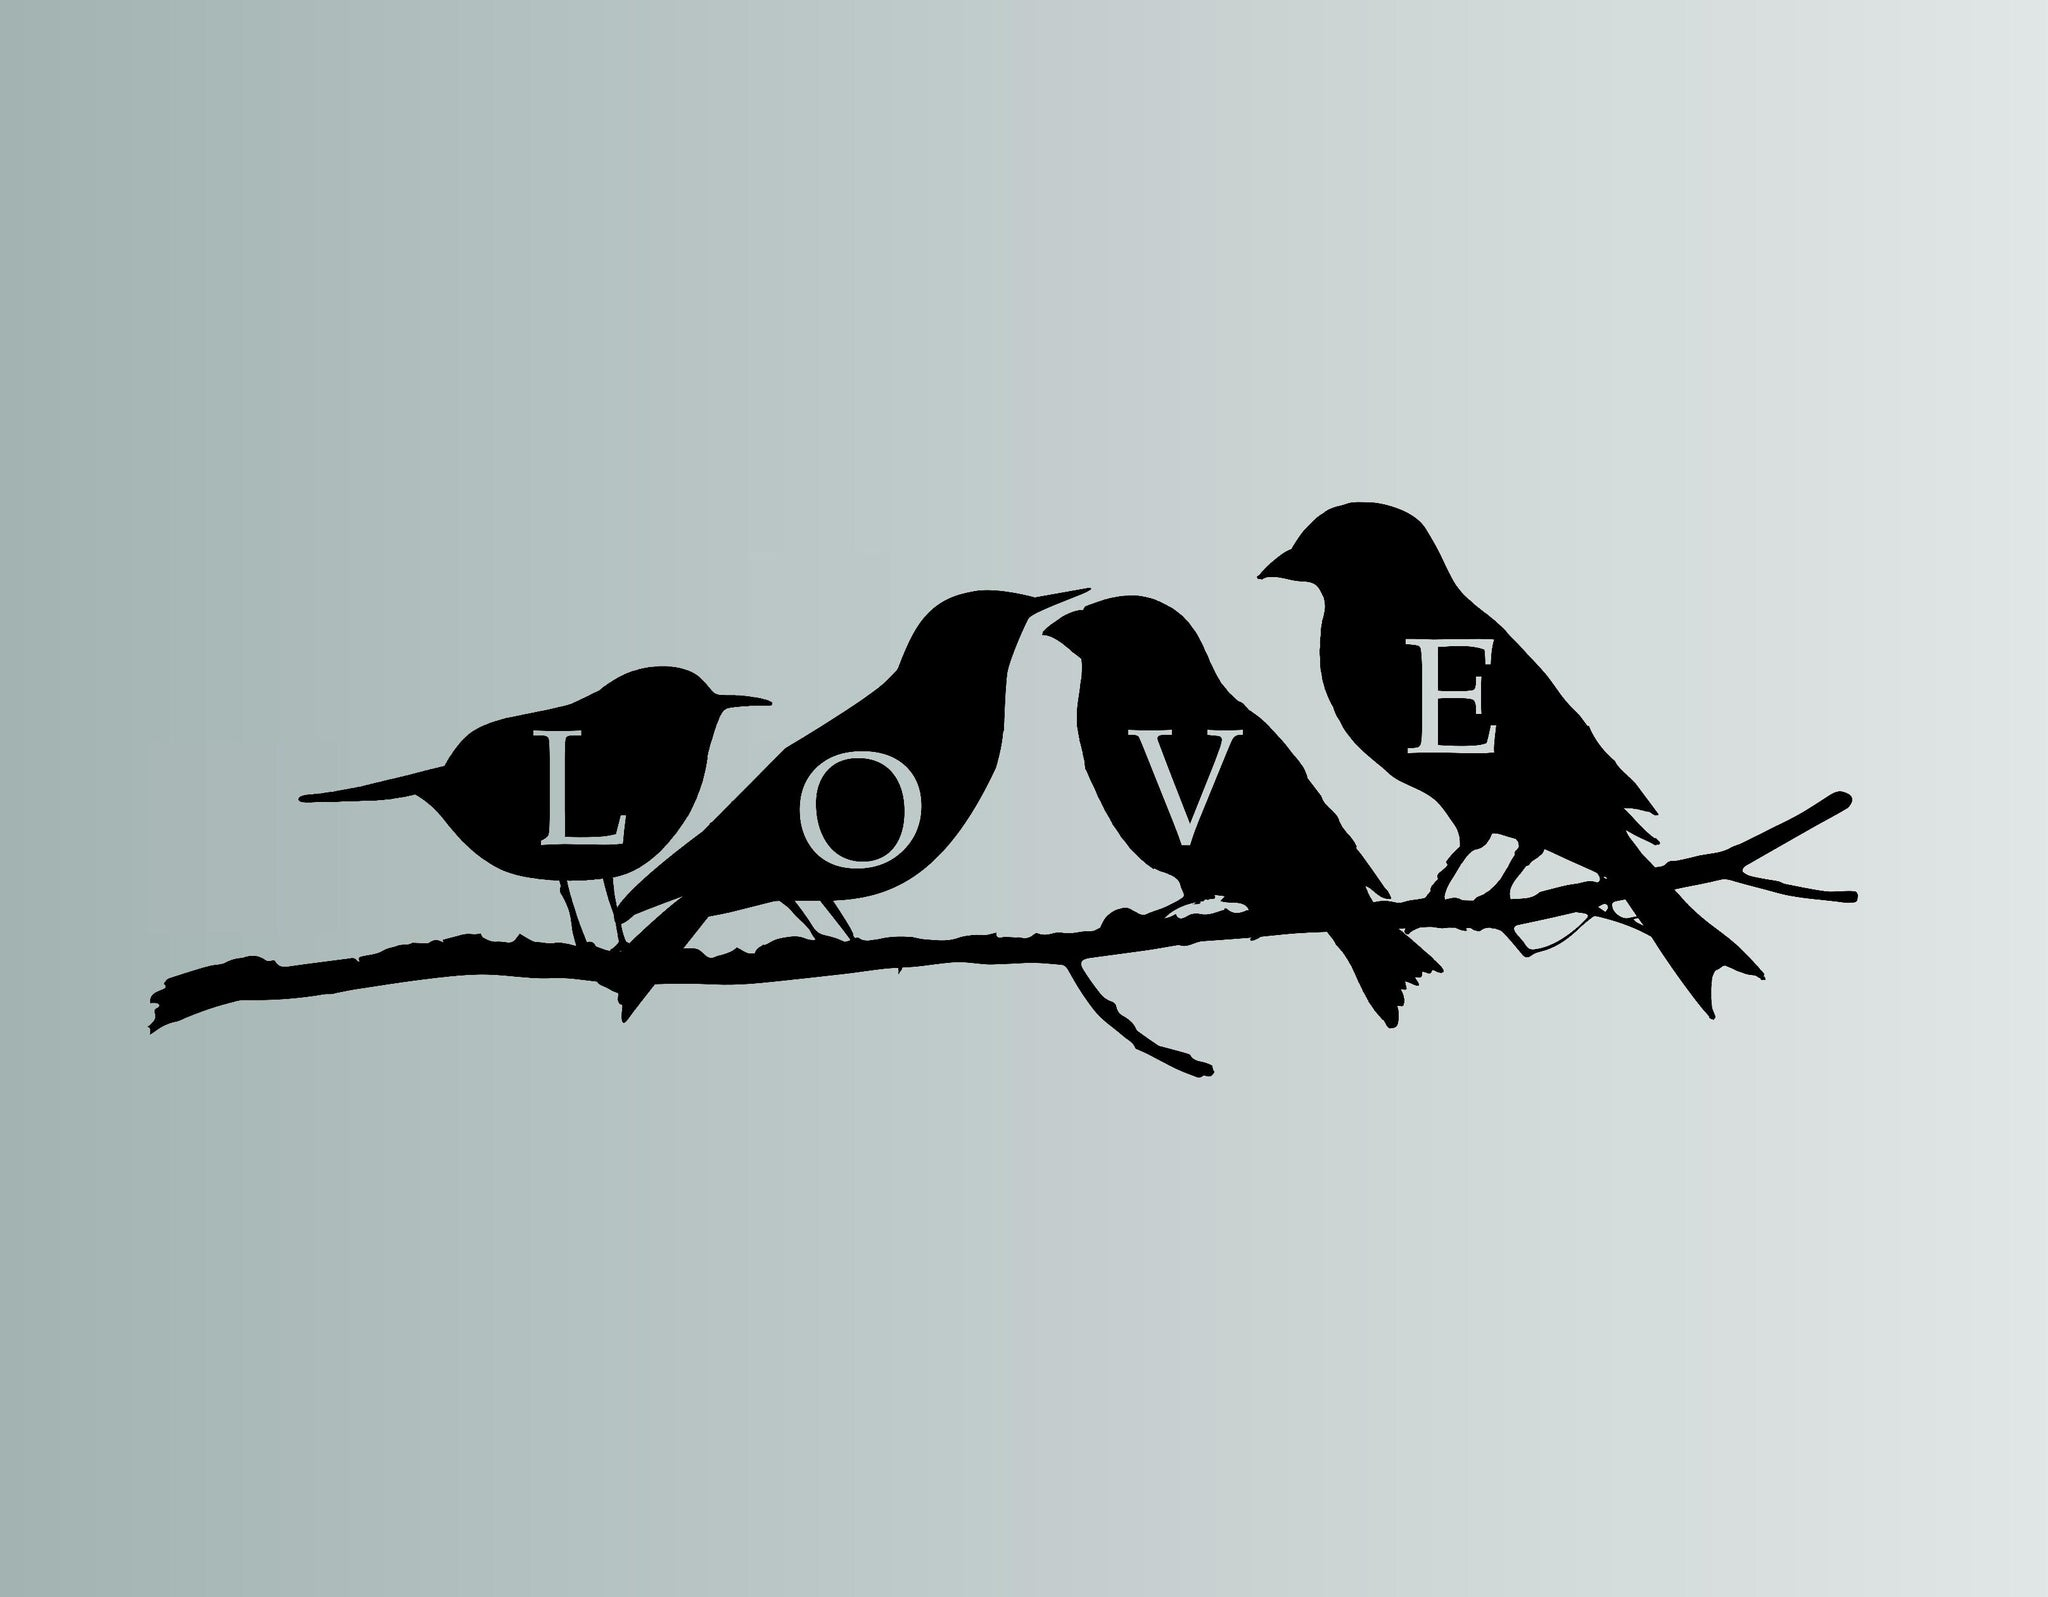 Love Birds Die Cut Vinyl Wall Decal